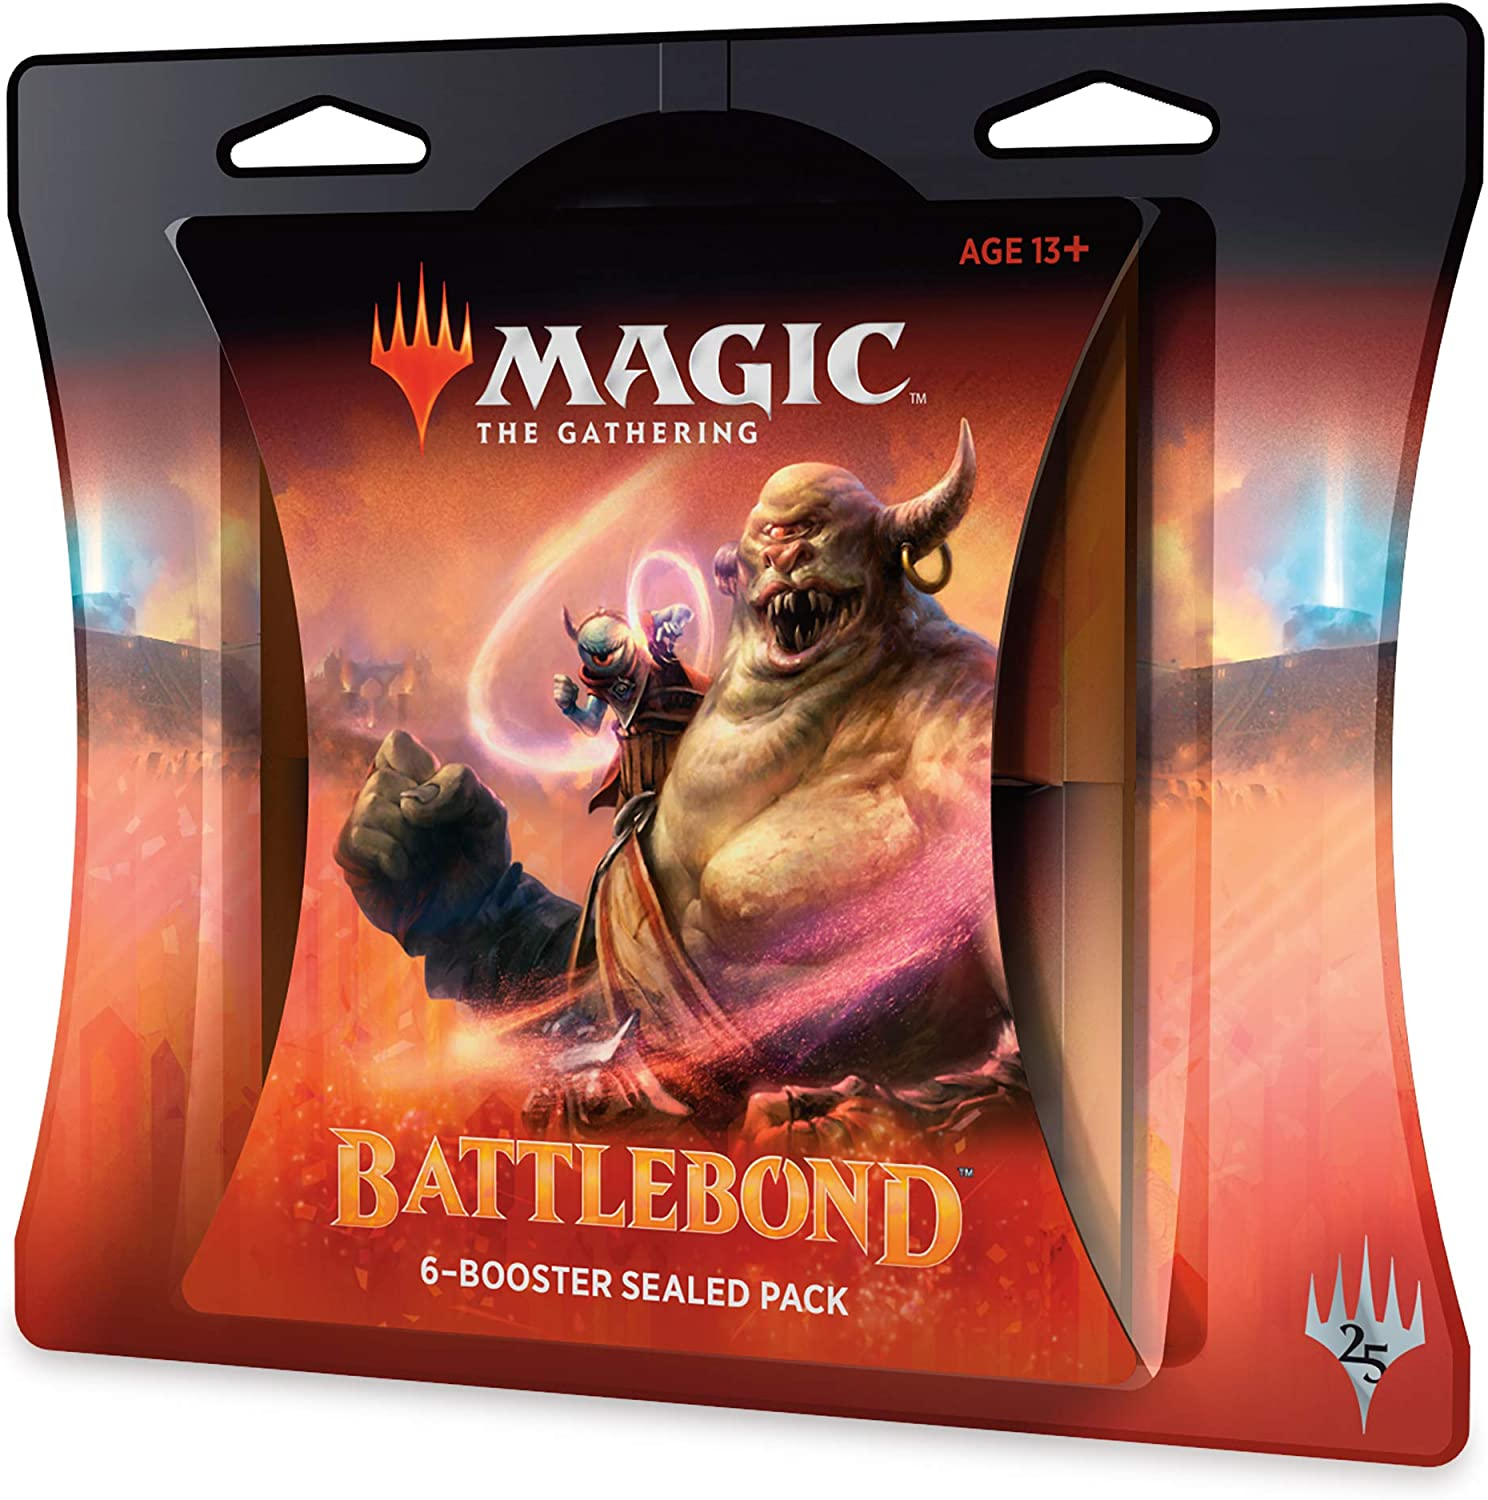 Magic: Courier shipping free The Gathering Battlebond Boost Special price Pack Battle 6